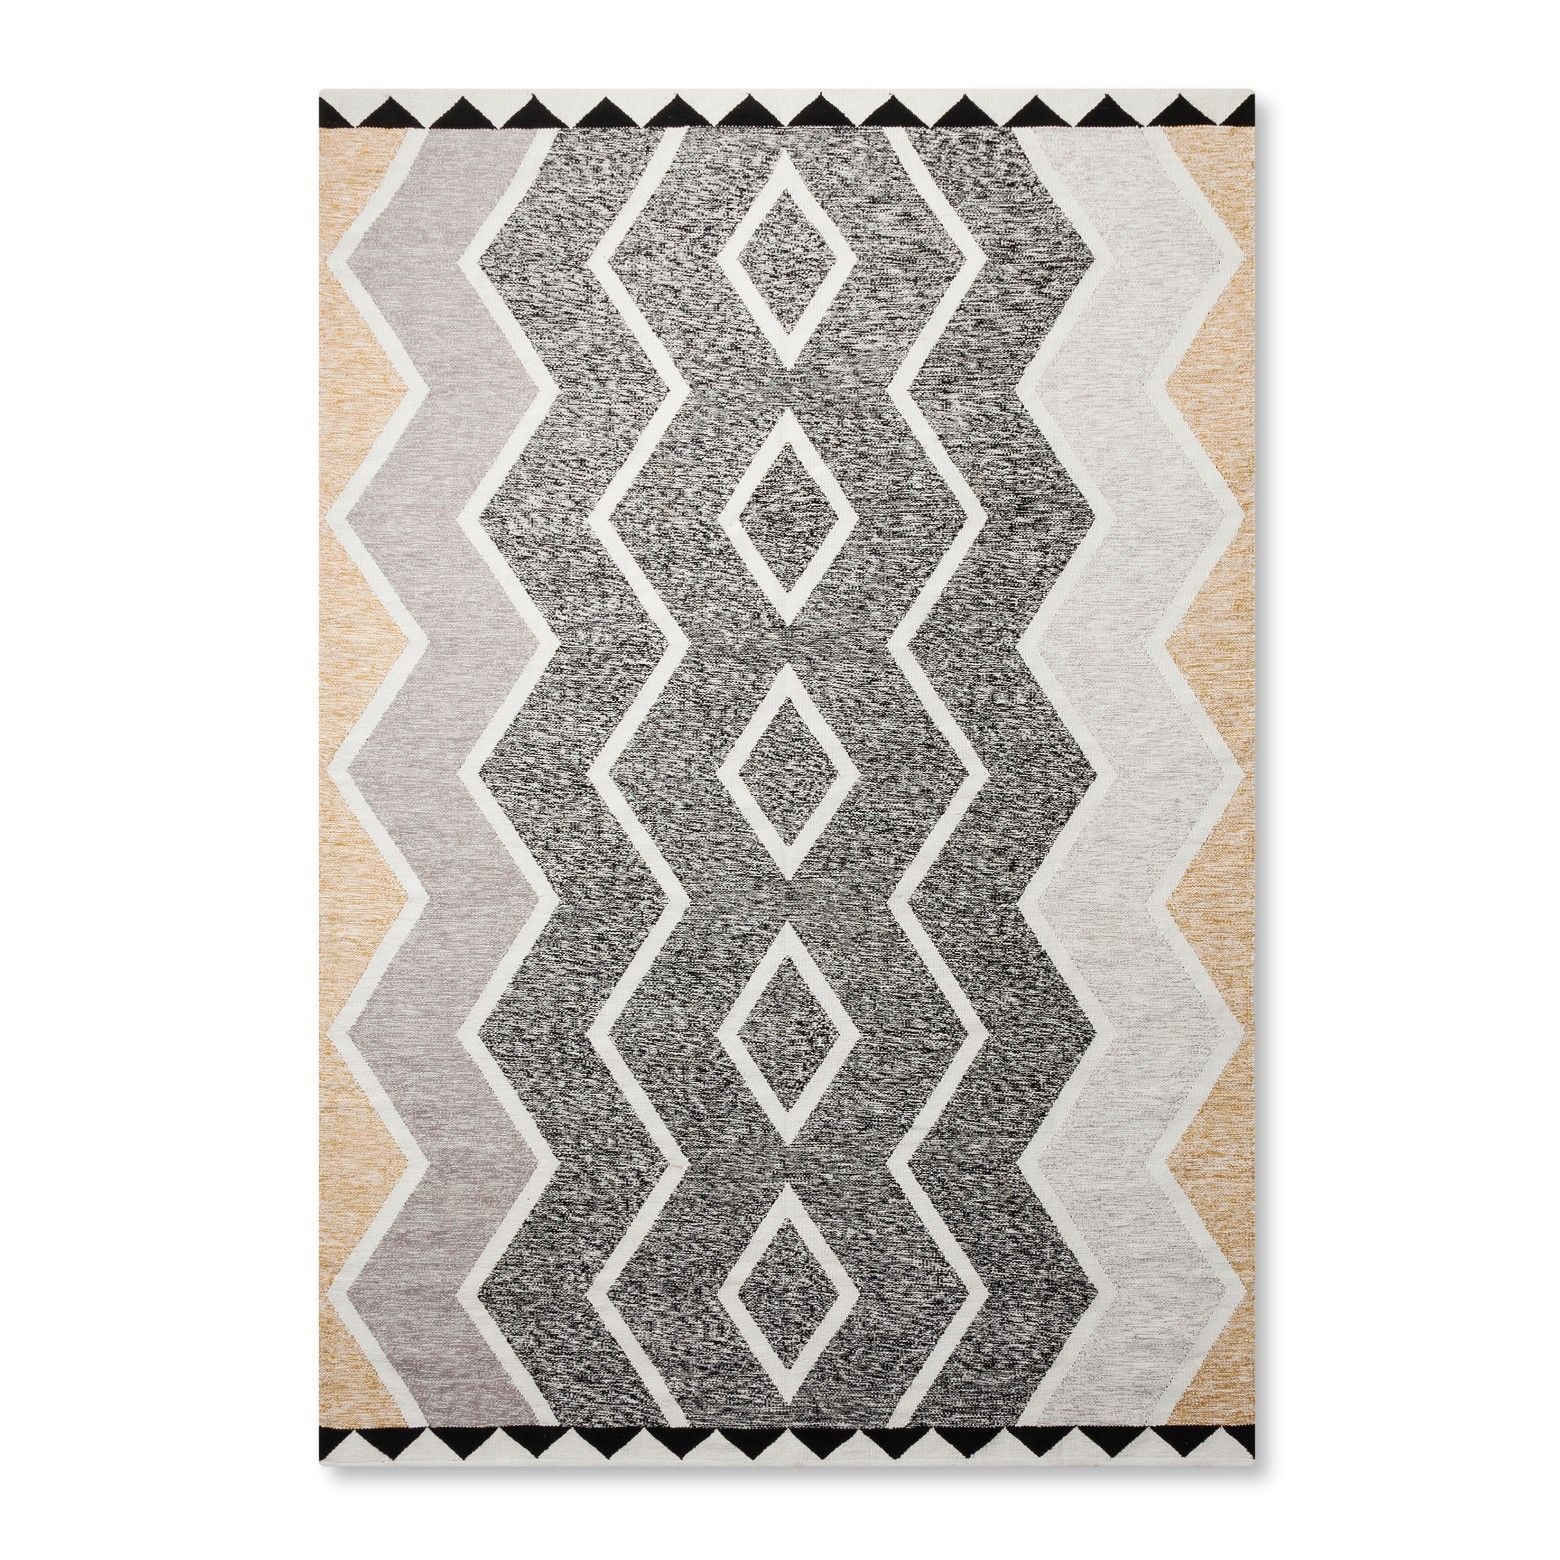 Chevron Diamonds And Triangles Make Great Compatriots In The Heathered Diamond Area Rug From Nate Berkus This Patterned Throw Mi Neutrals Ed